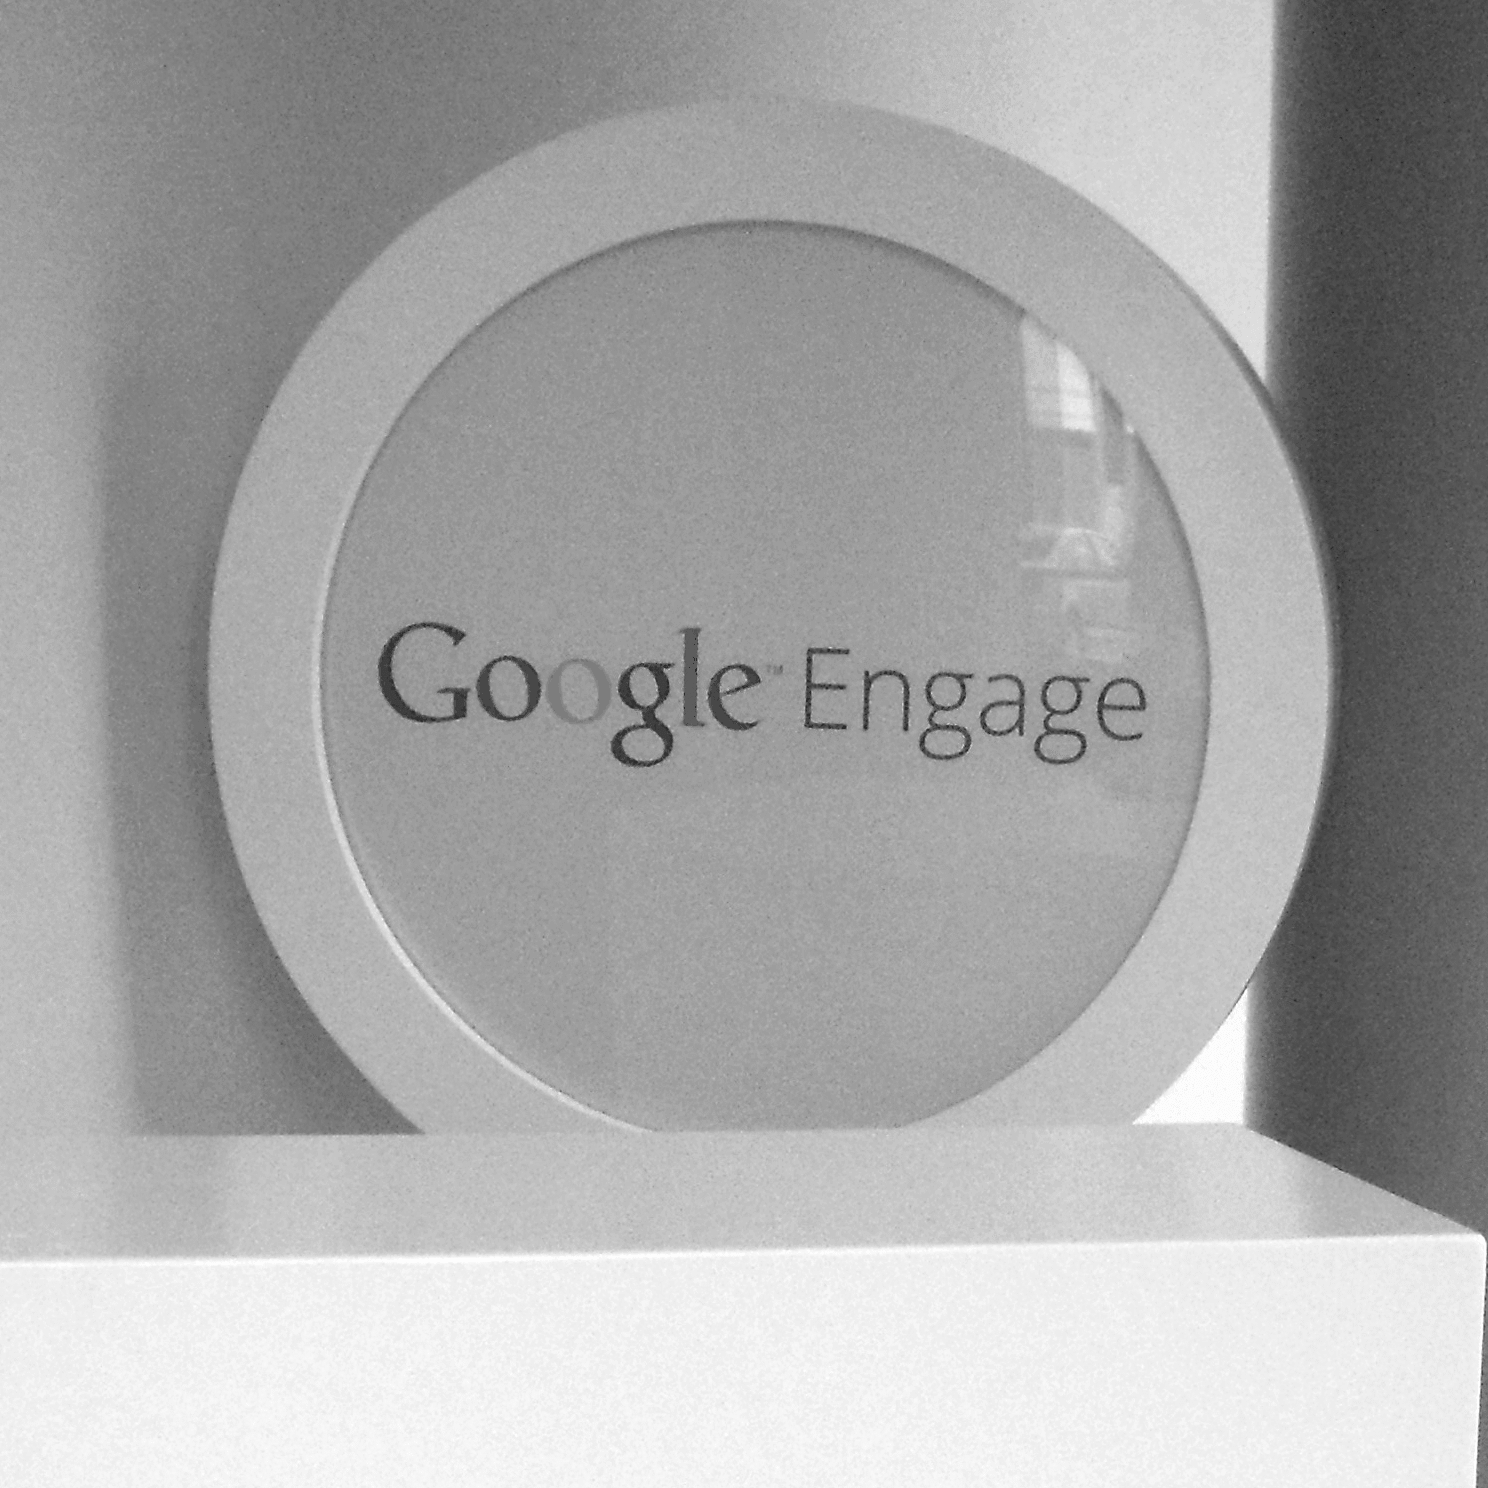 google-engage-logo